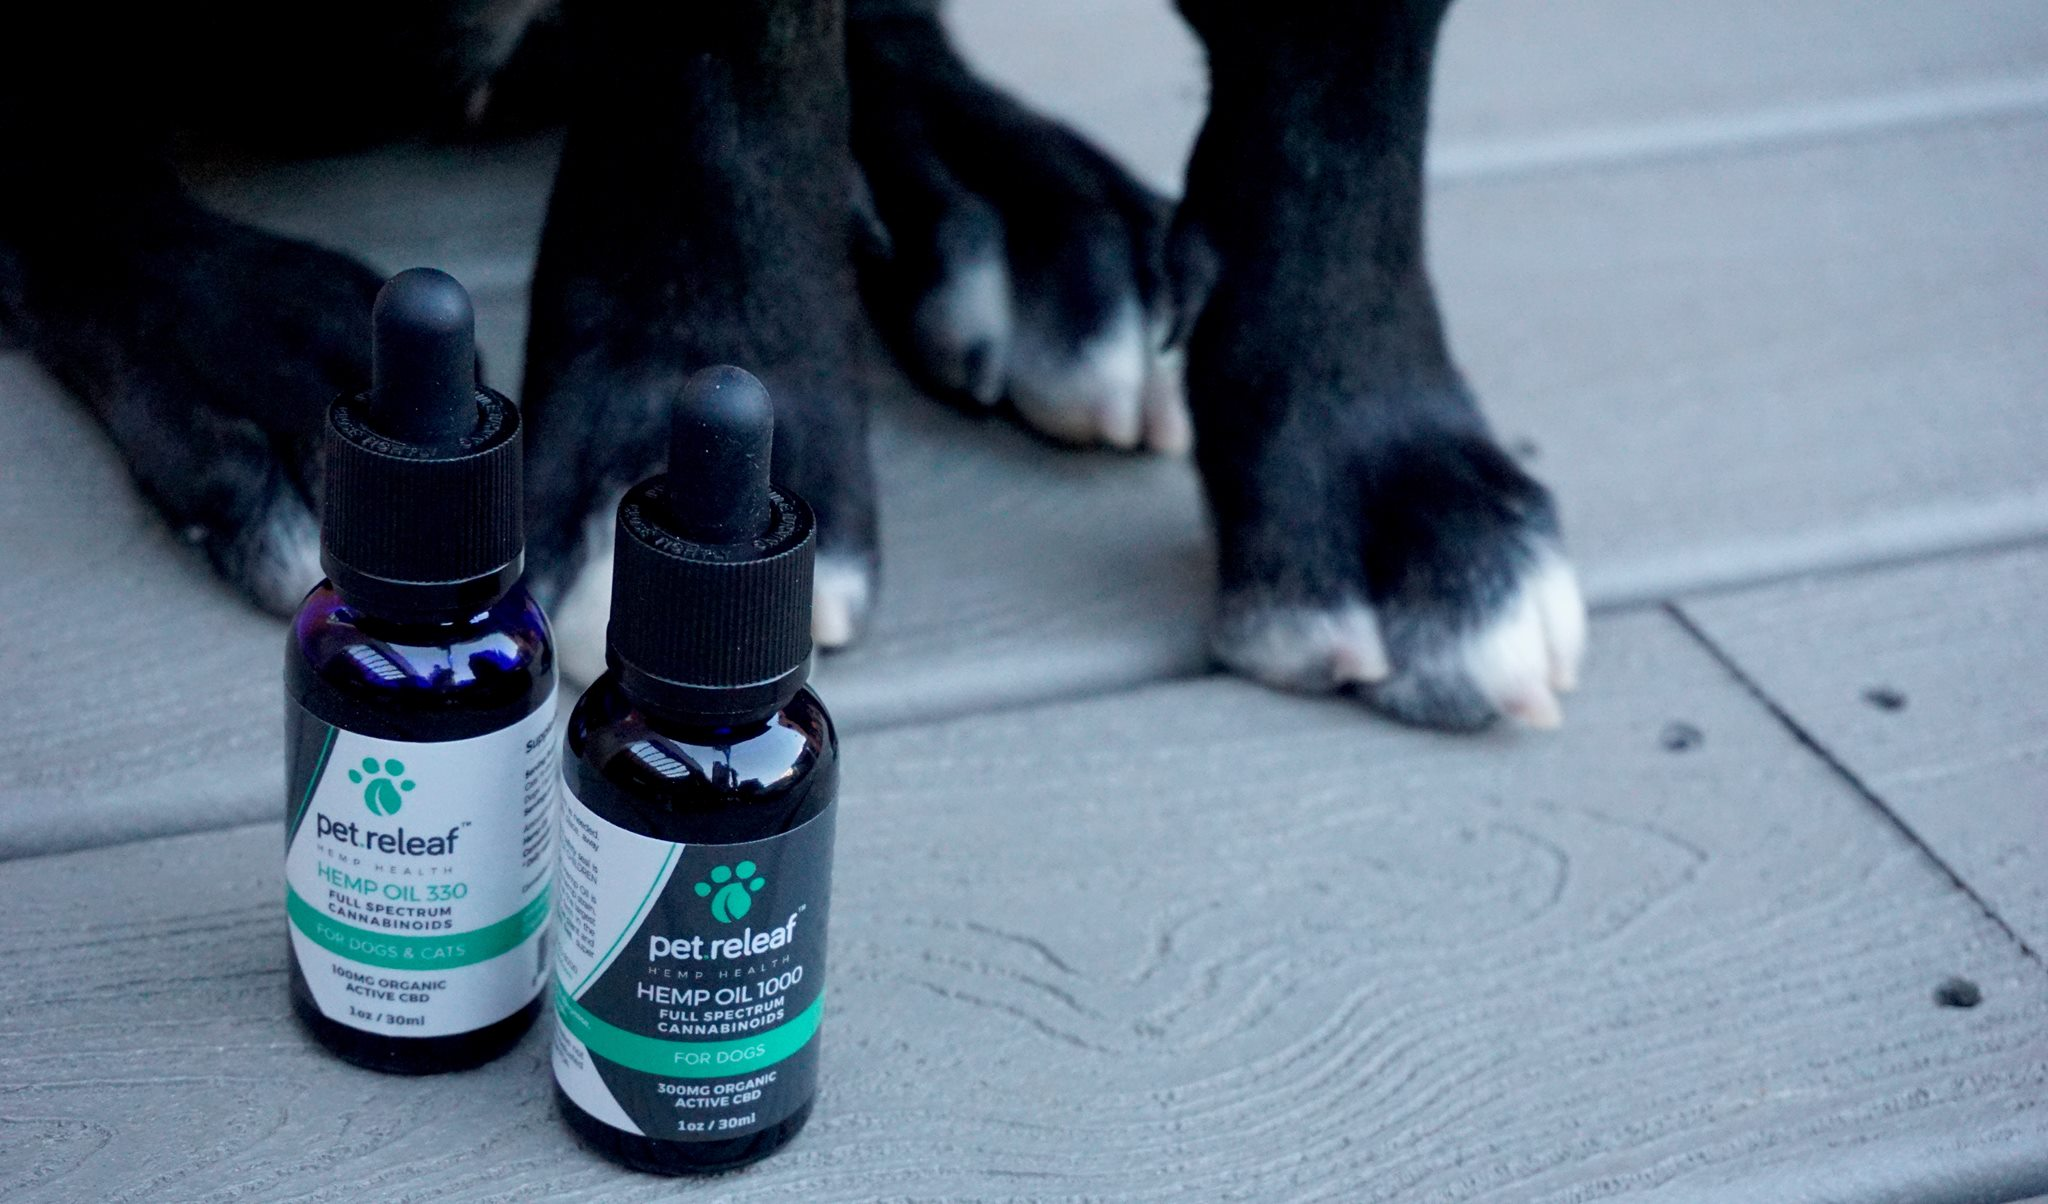 Shop Feed Pet Purveyor for Pet Releaf USDA Organic CBD oil for dogs and cats